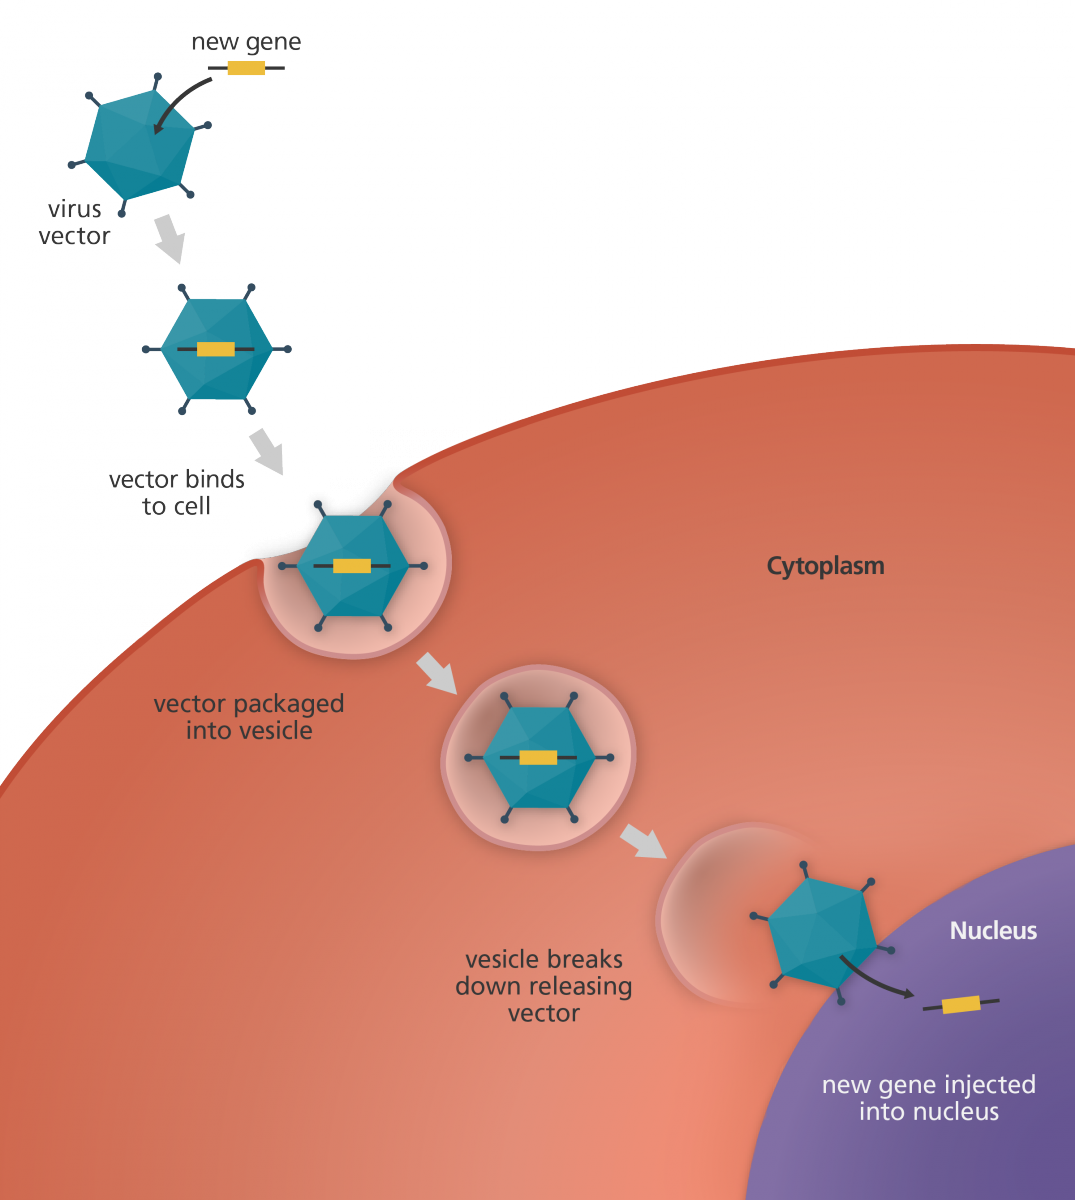 Cancer vector virus. What is gene therapy